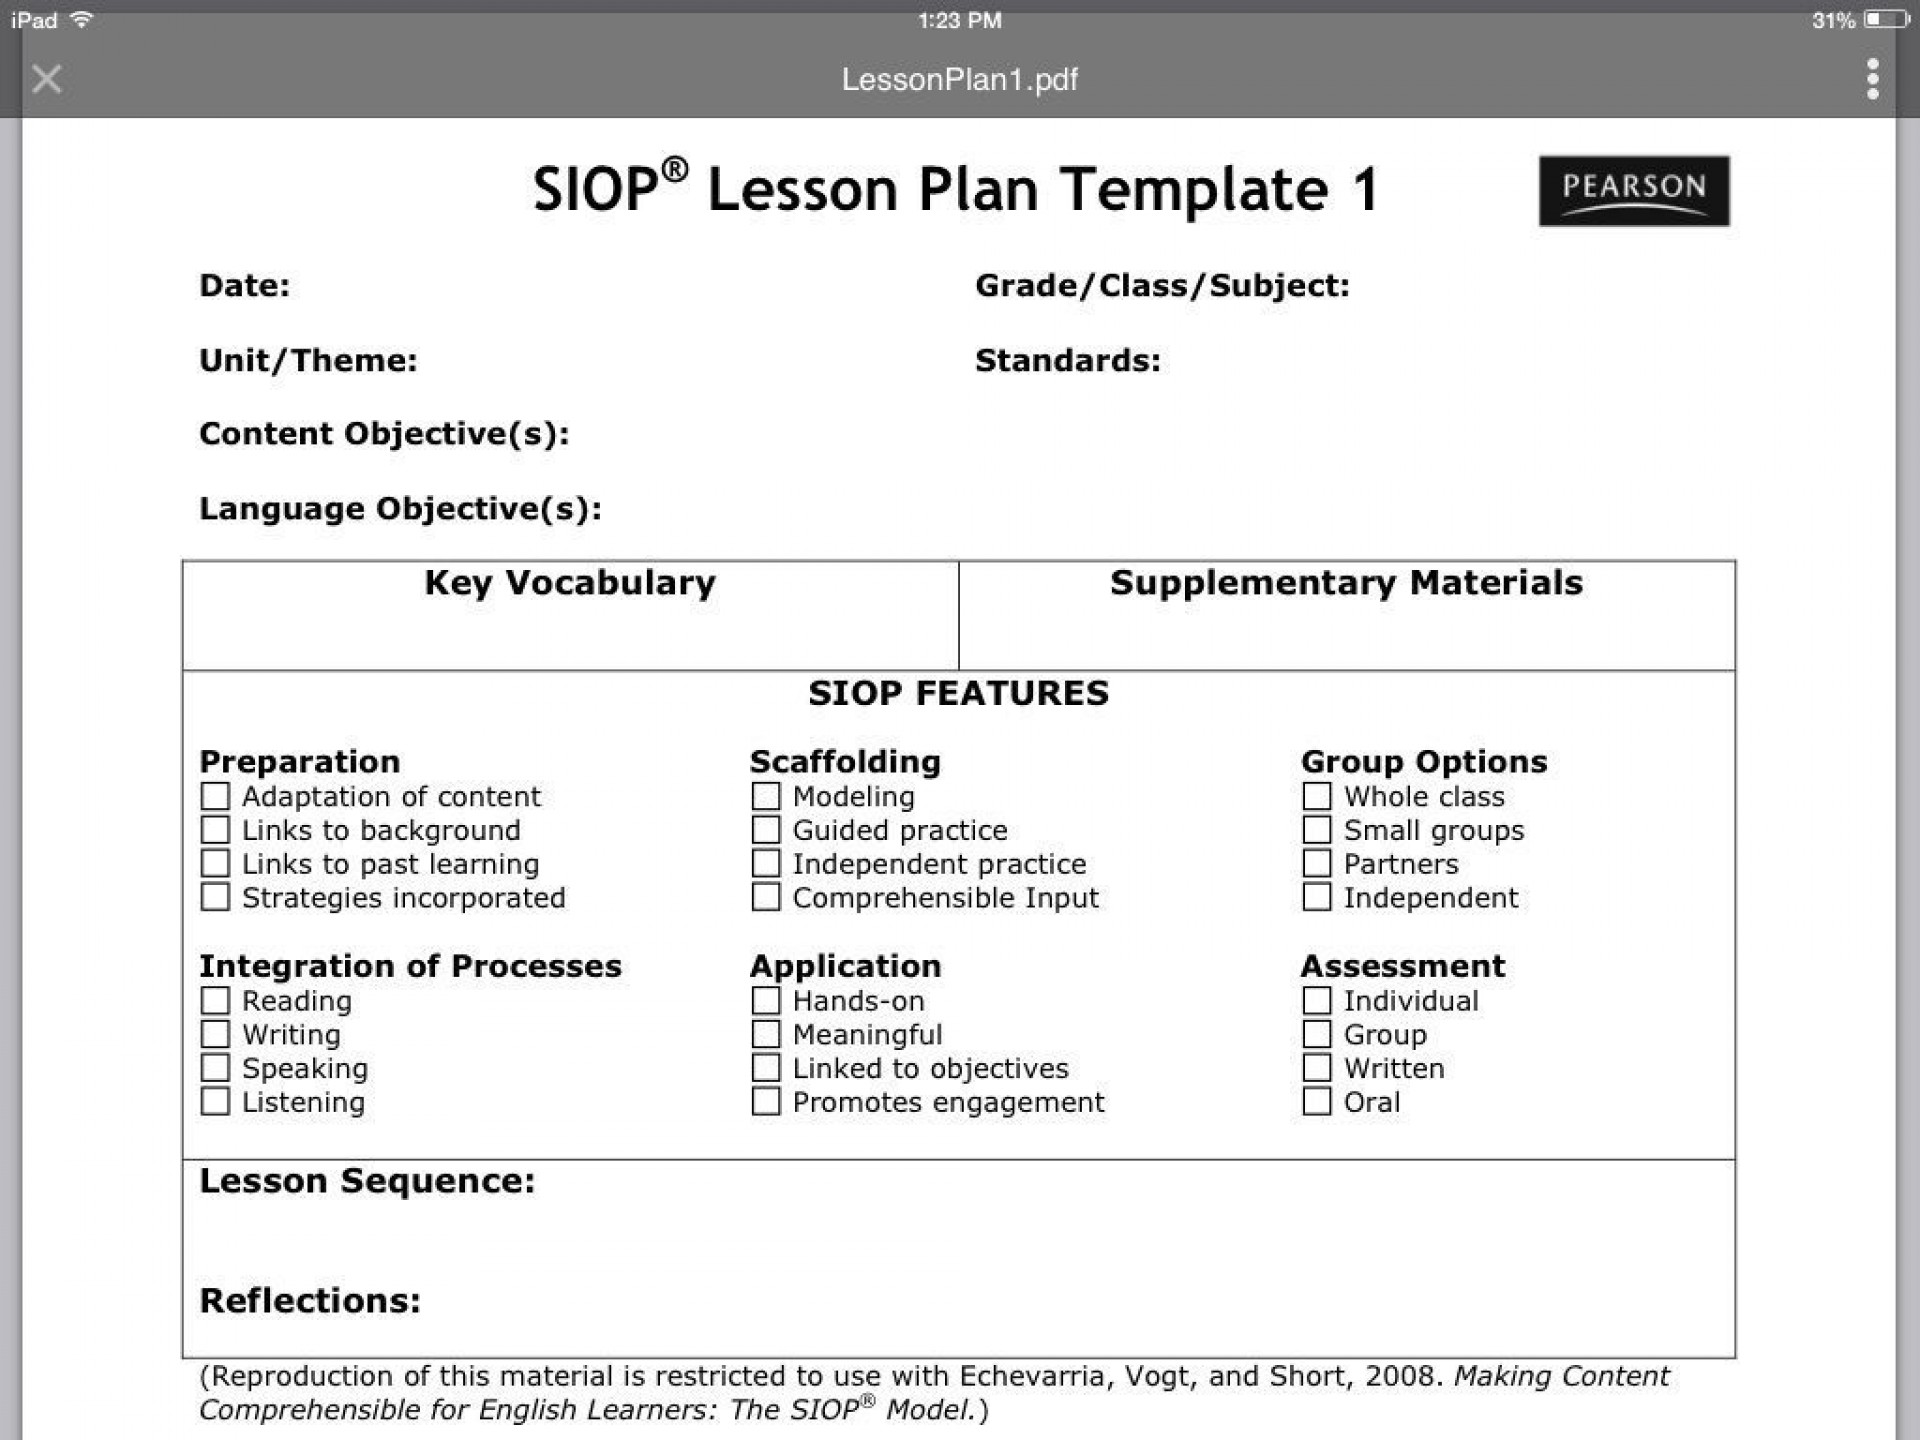 007 Striking Siop Lesson Plan Template 1 Highest Clarity  Example First Grade Word Document 1st1920